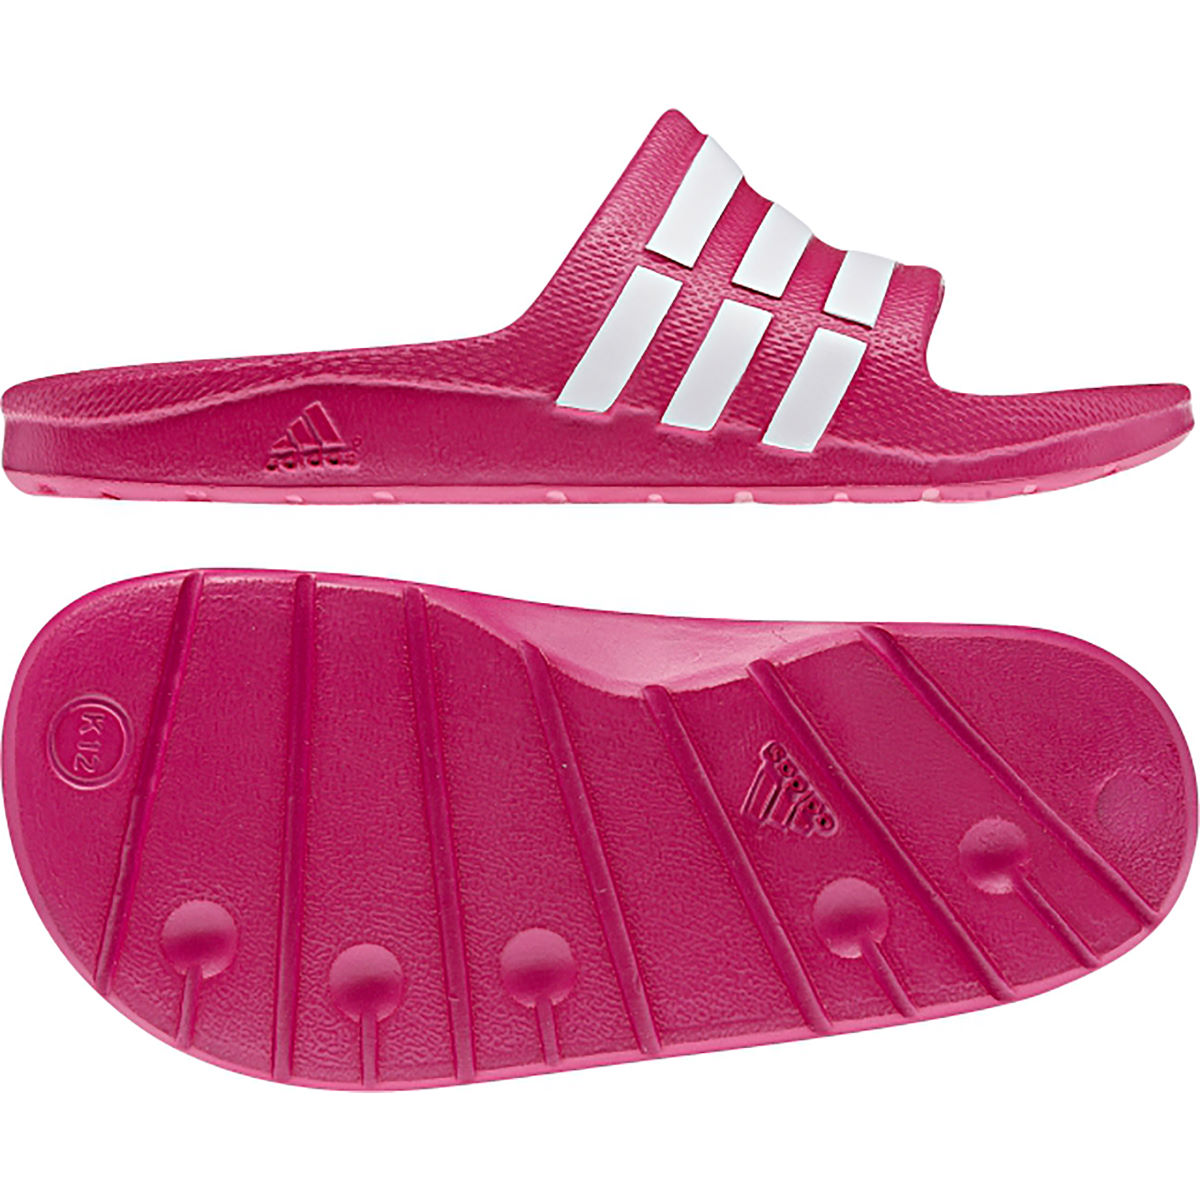 Sandales Enfant Adidas Duramo (rose) - UK 13 Youth Vivid Berry